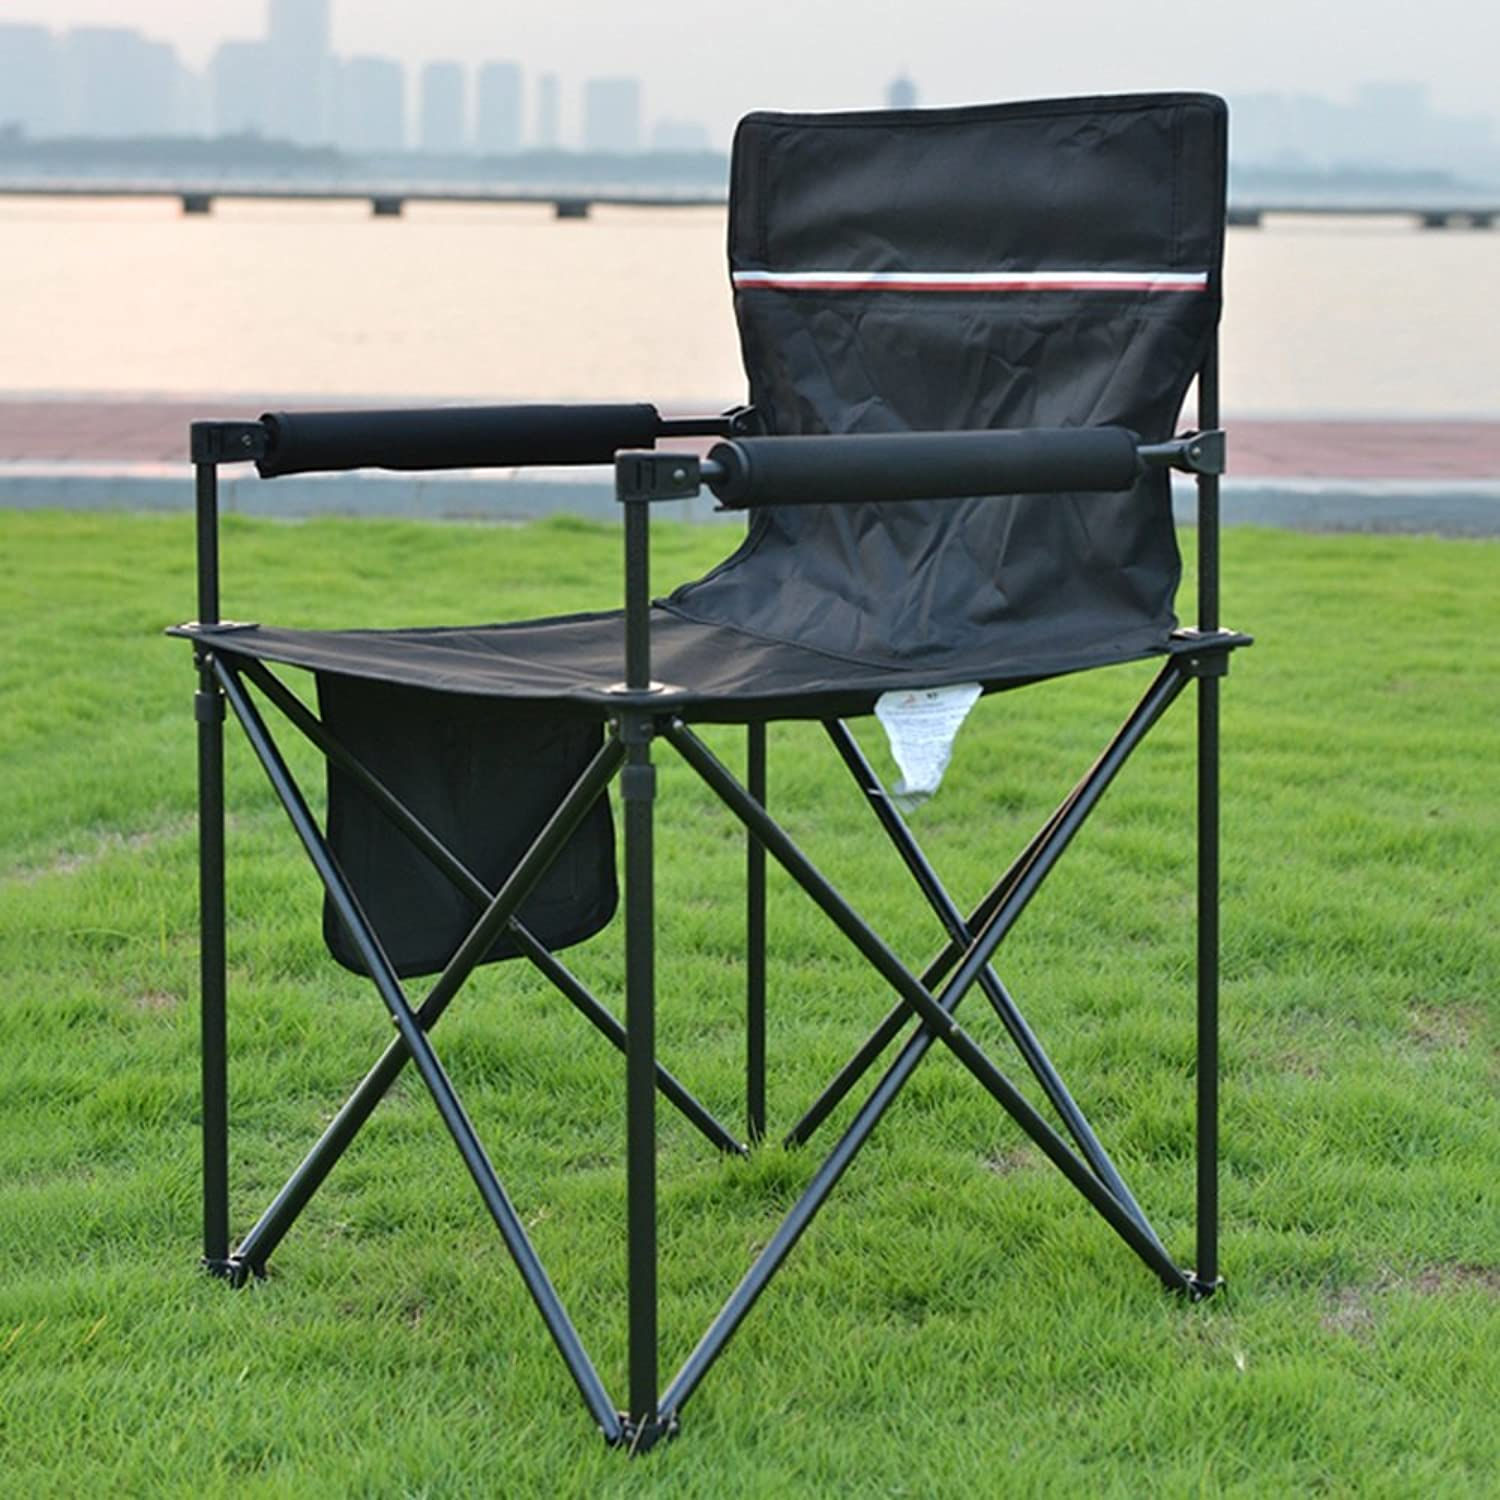 Folding chair QFFL Portable Barbecue Table Outdoor Beach Leisure Fishing Chair 2 color Optional 83  48  54cm Outdoor stool (color   B)